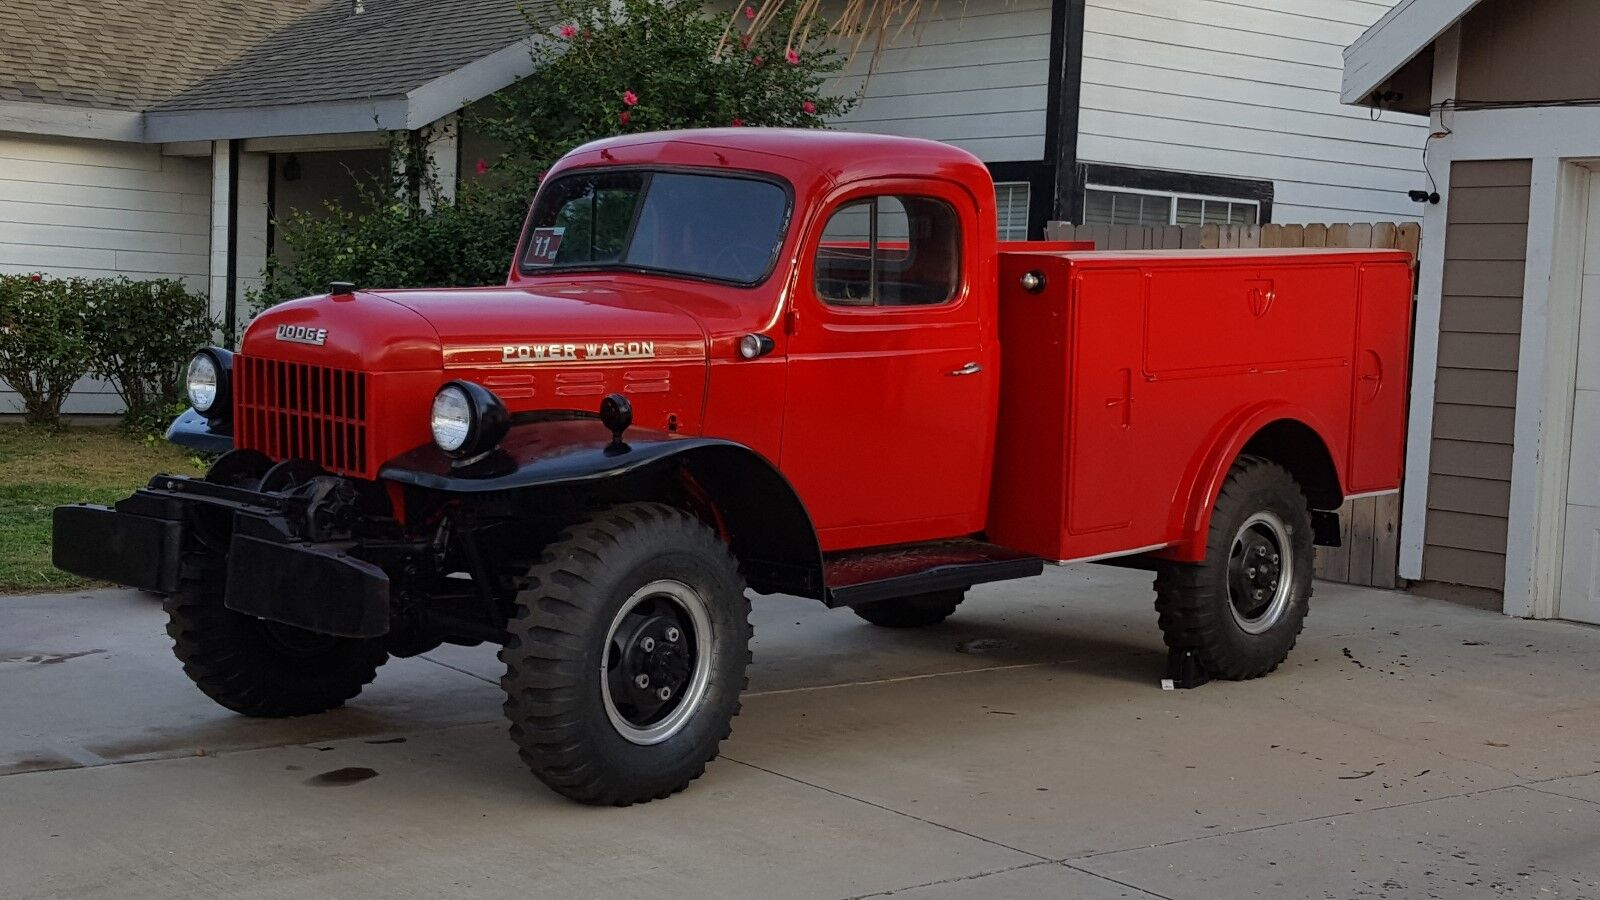 1954 Dodge Power Wagon  1954 Dodge Power Wagon 4X4 with Morrison Carry-All™ Service Bed